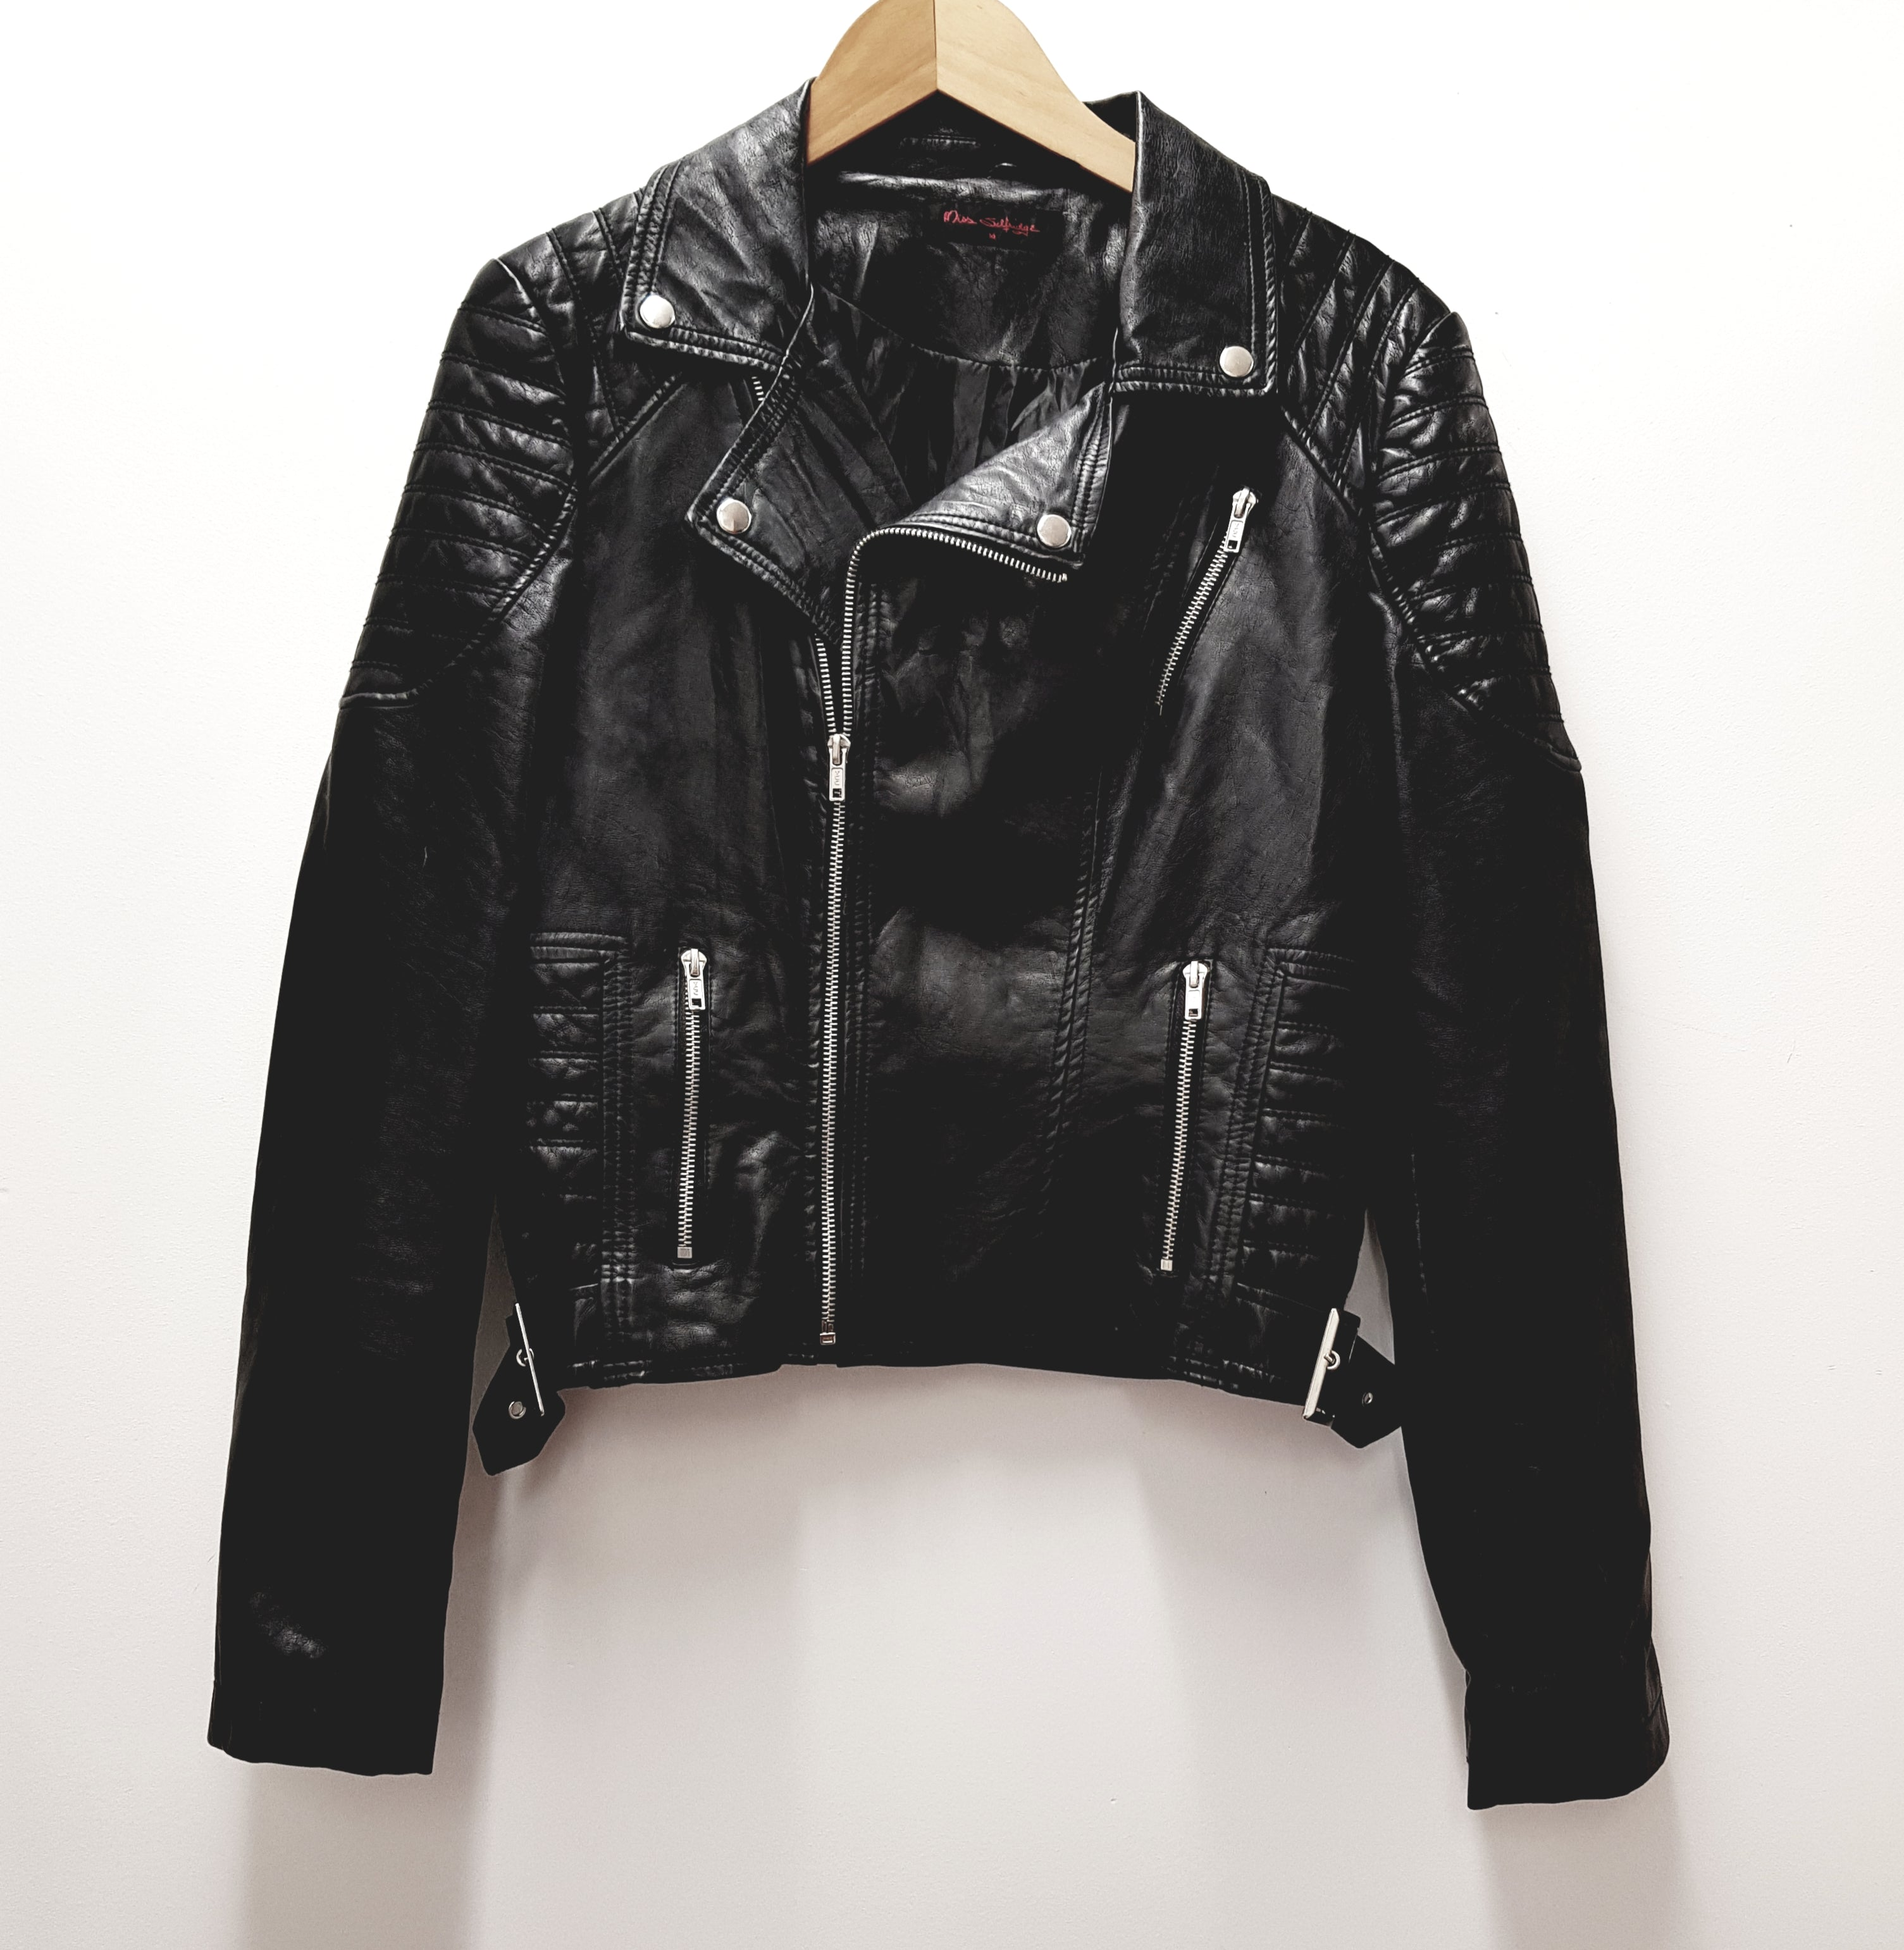 MISS SELFRIDGE - Faux Leather Jacket - PRELOVED